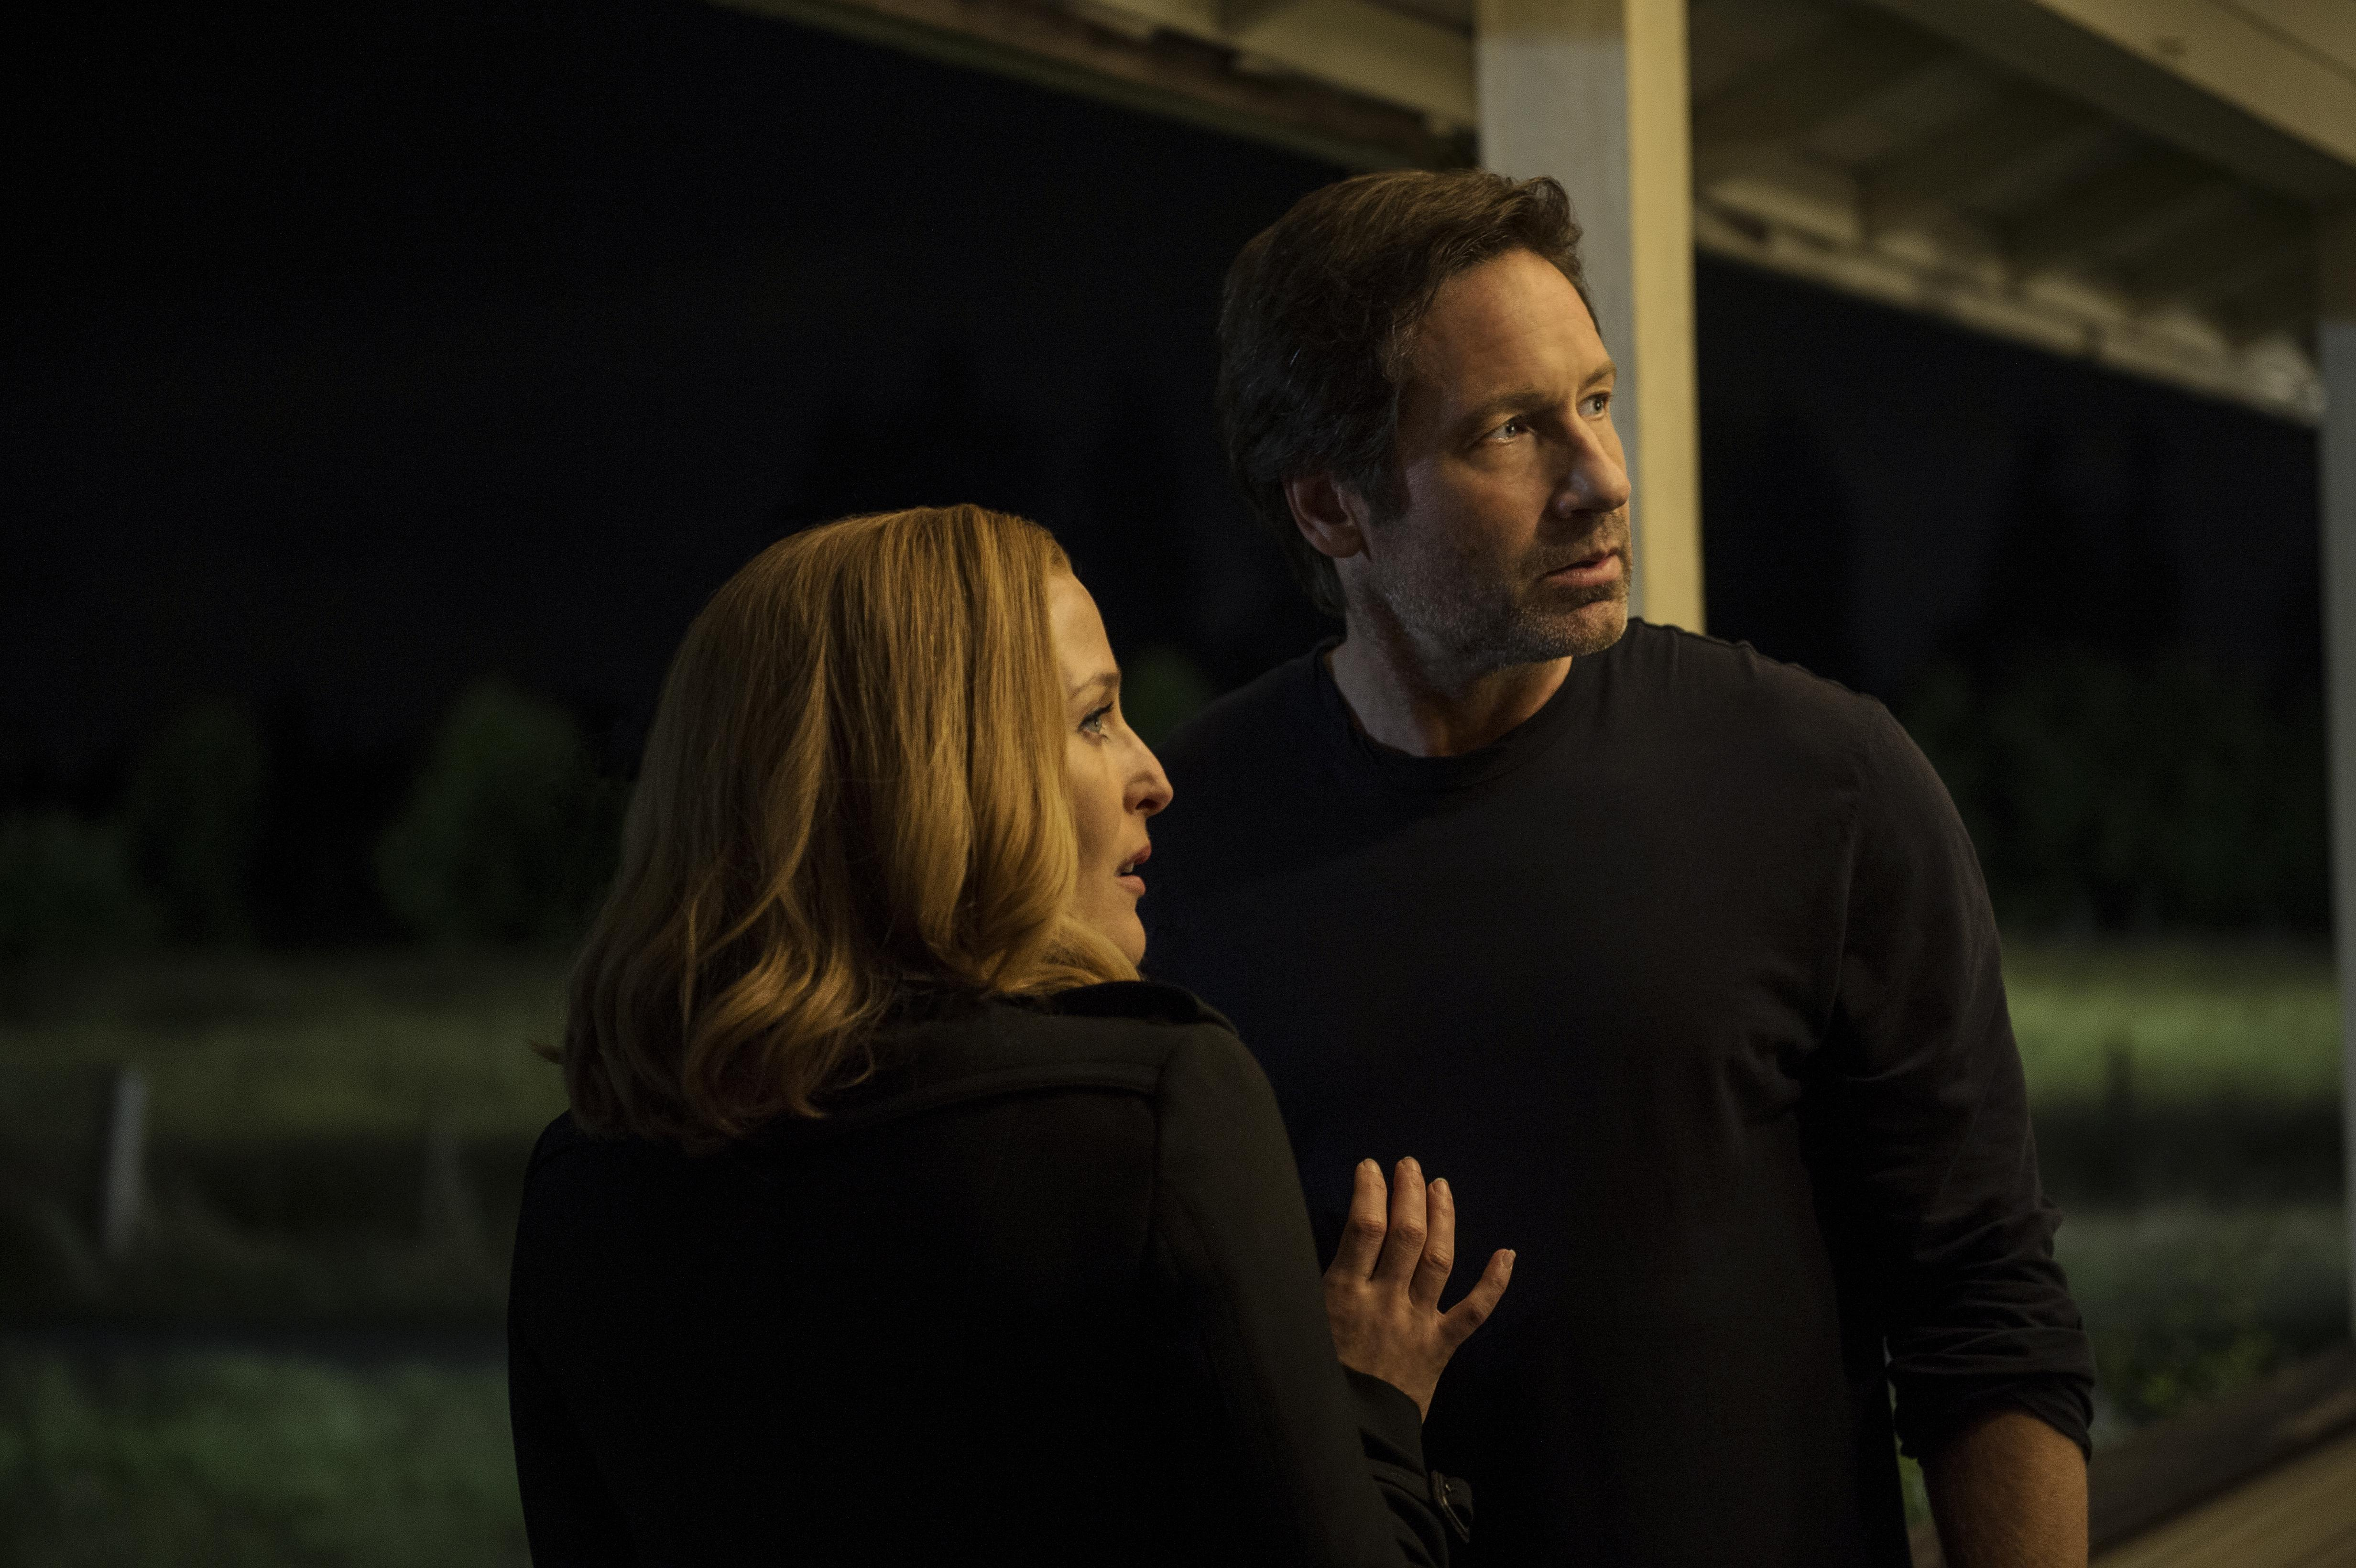 More New X-Files On The Way?